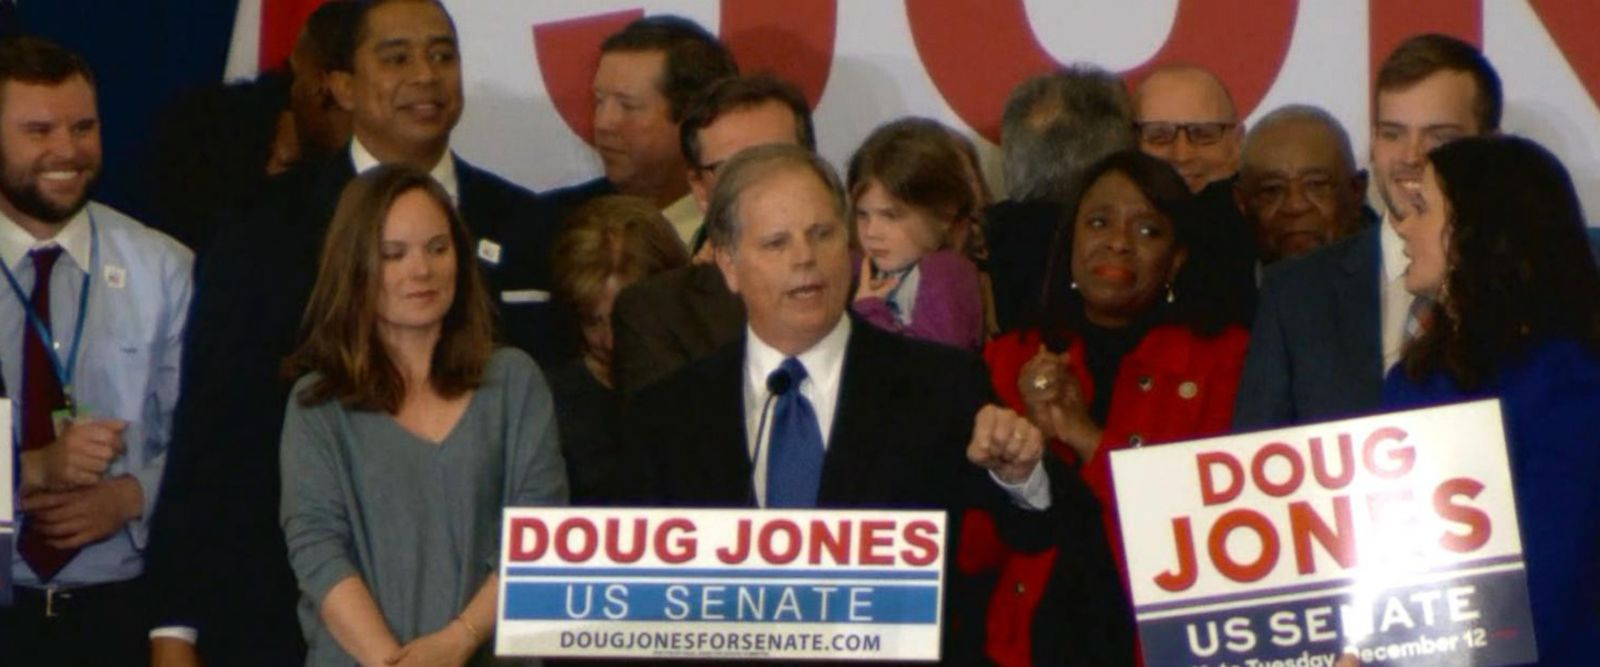 VIDEO: Doug Jones wins Alabama Senate race